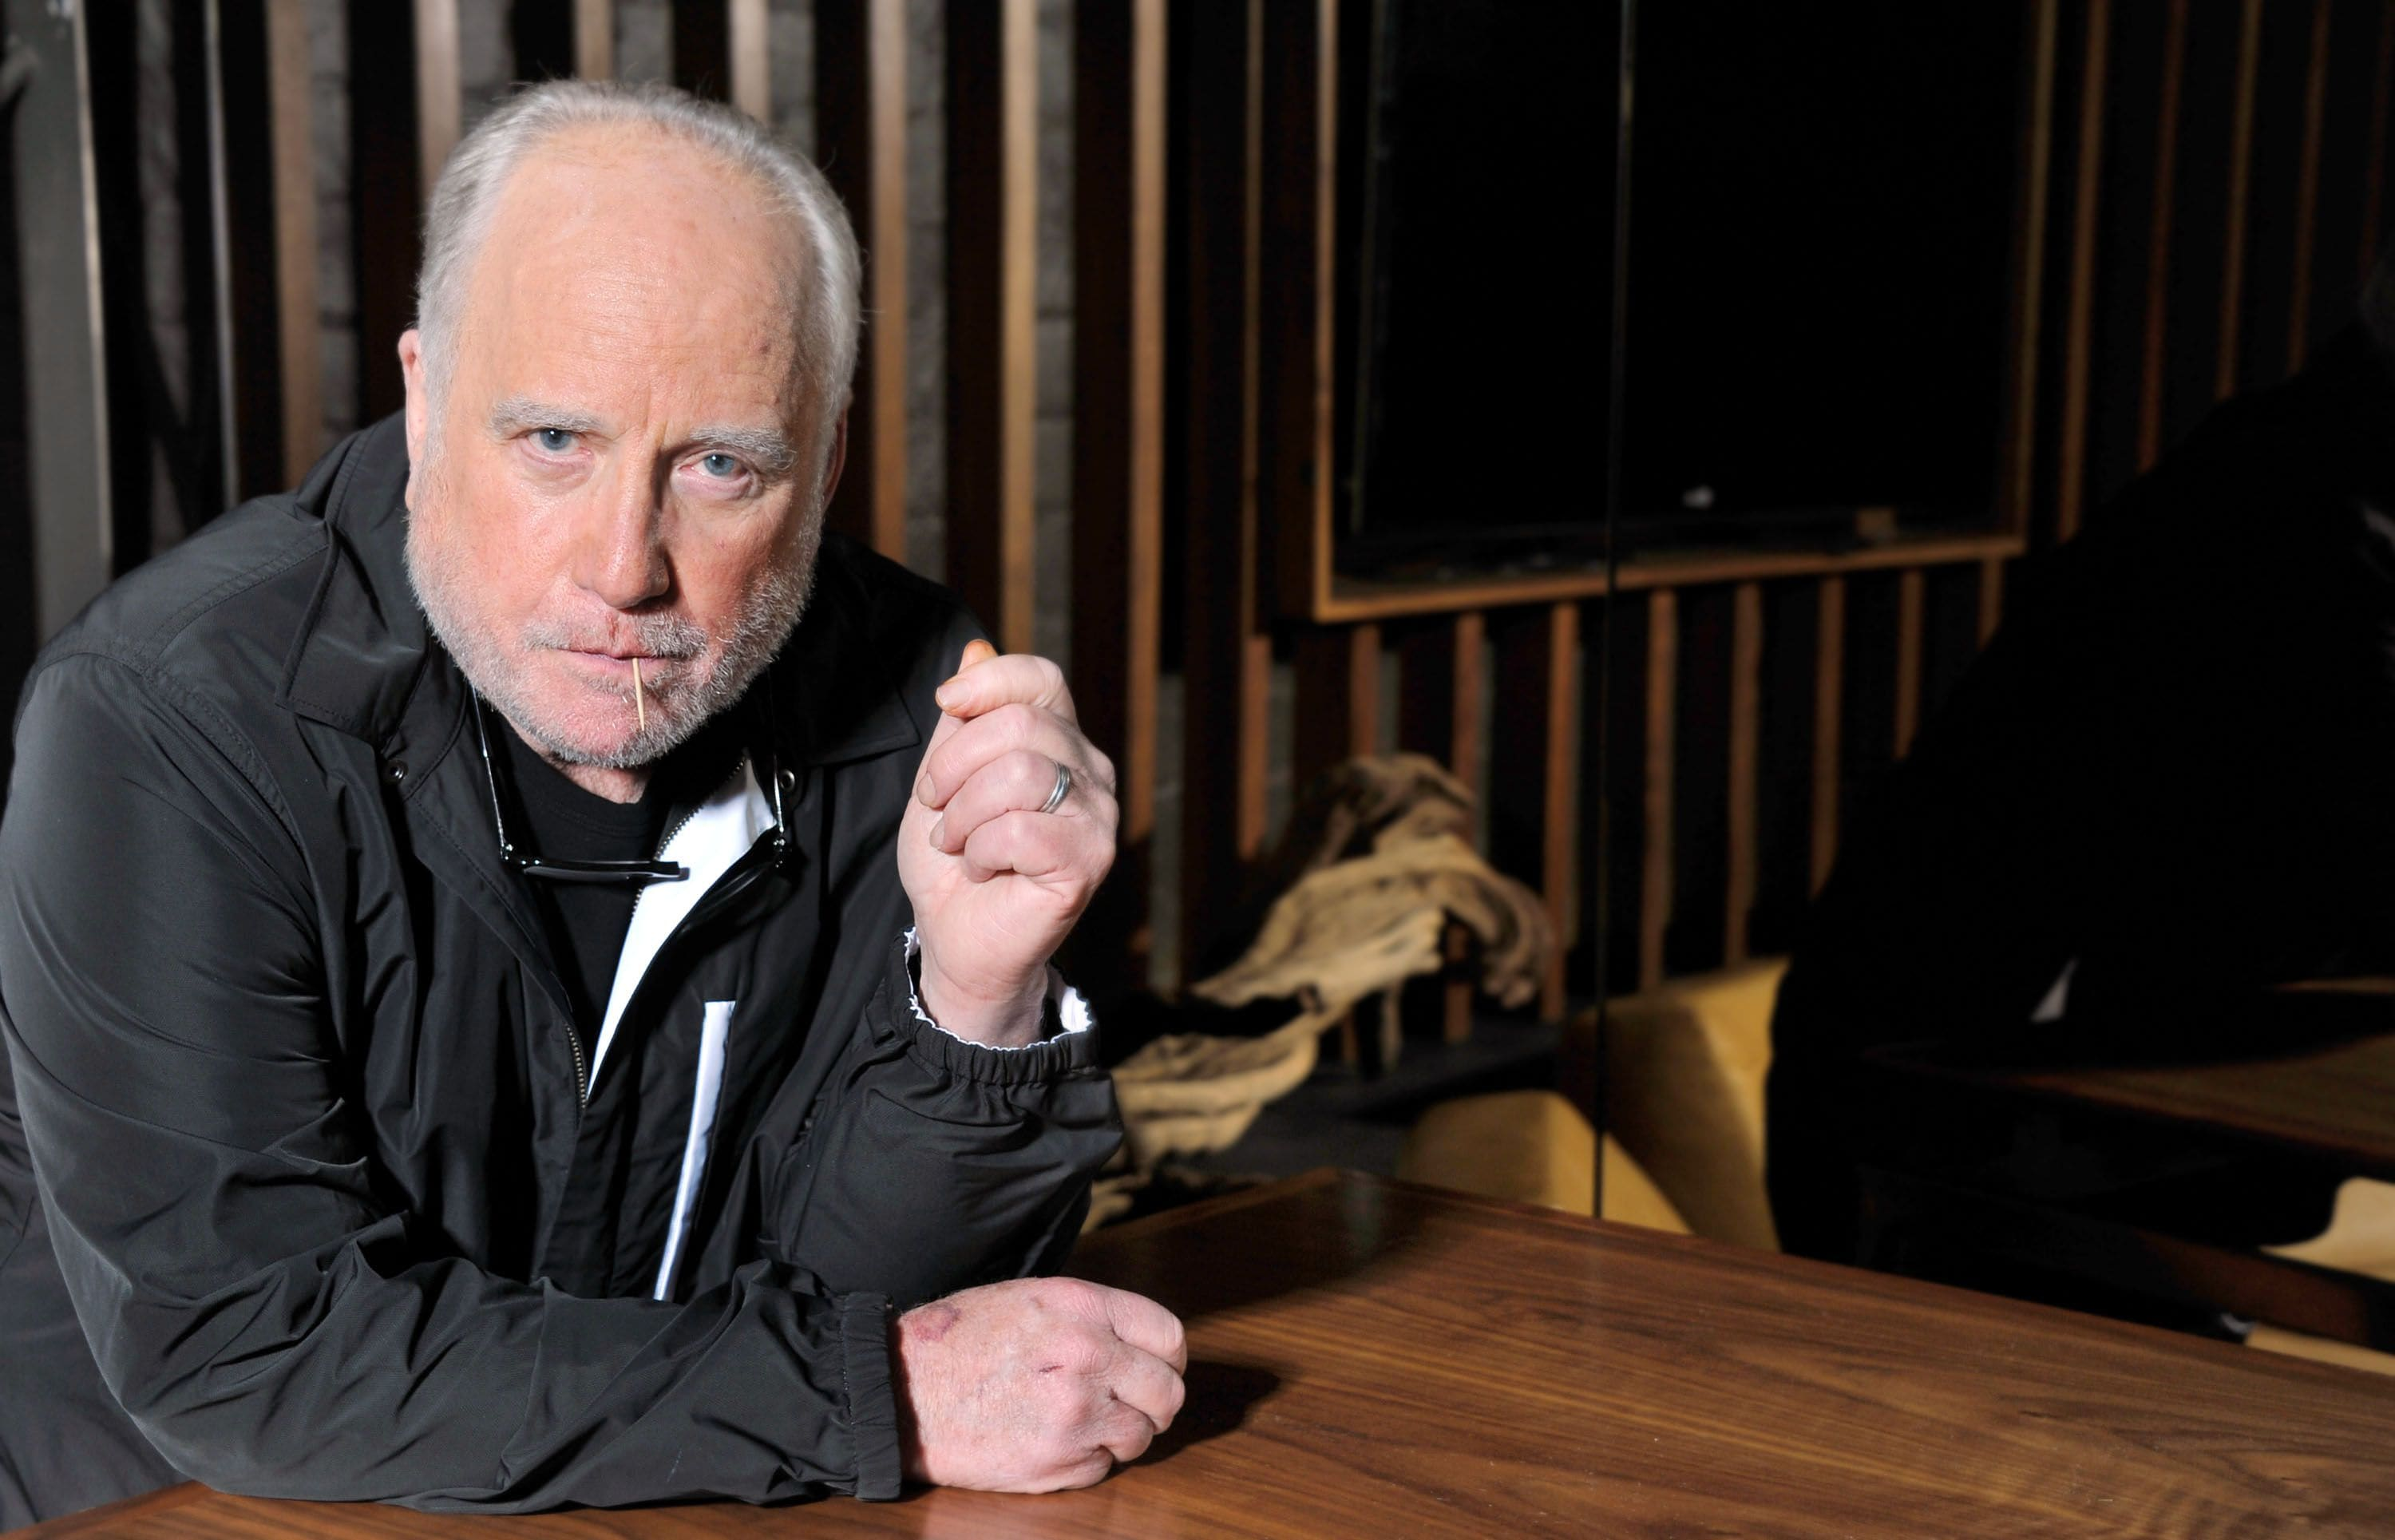 Richard Dreyfuss Full hd wallpapers